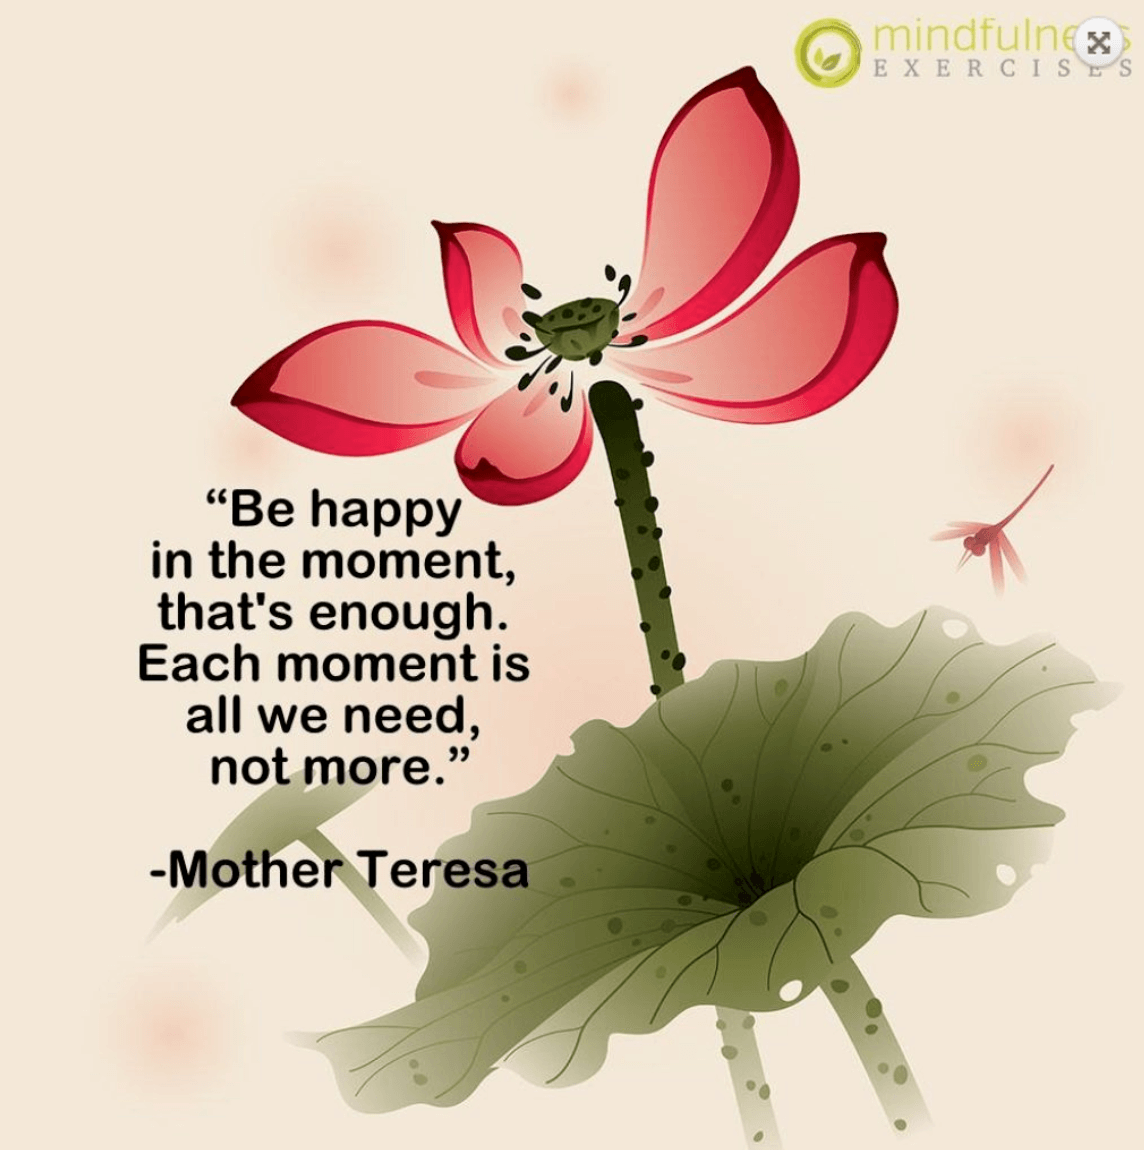 Short Mindfulness Quotes and Processes - Be Happy In The Moment